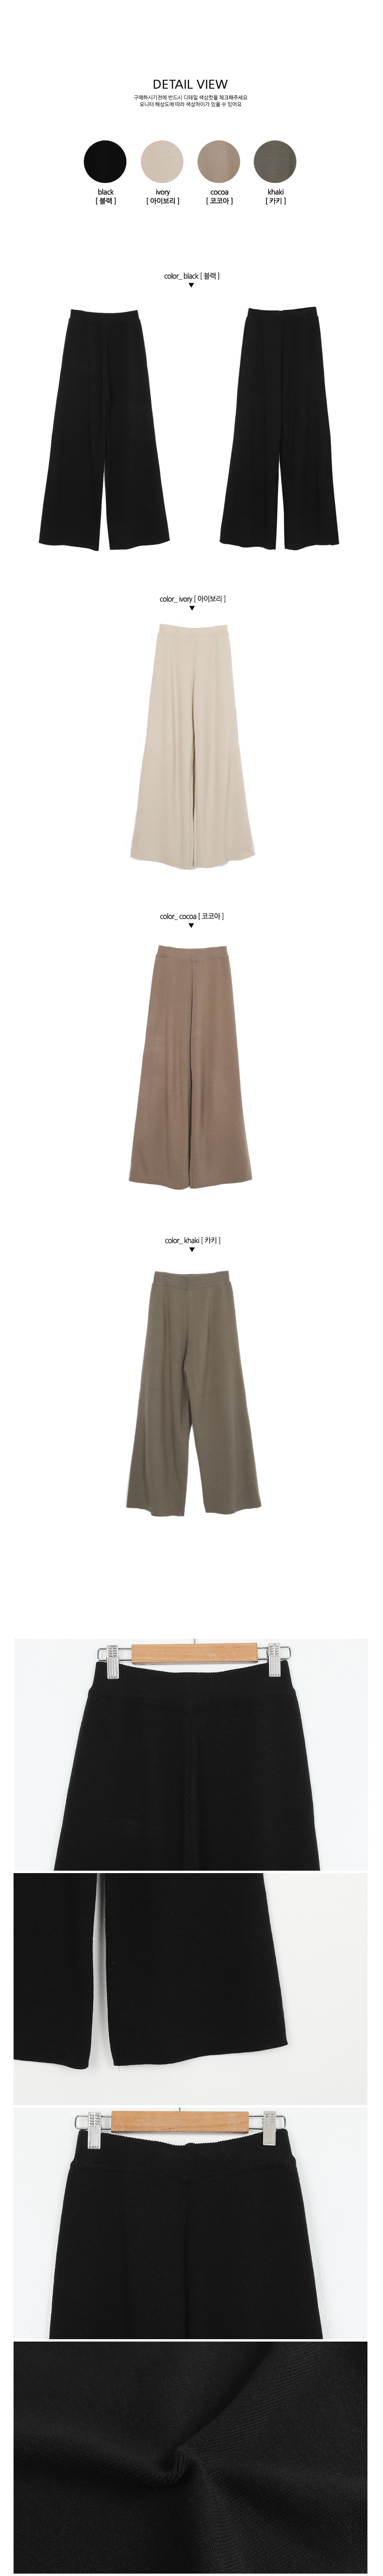 Nelif Wide knit pants